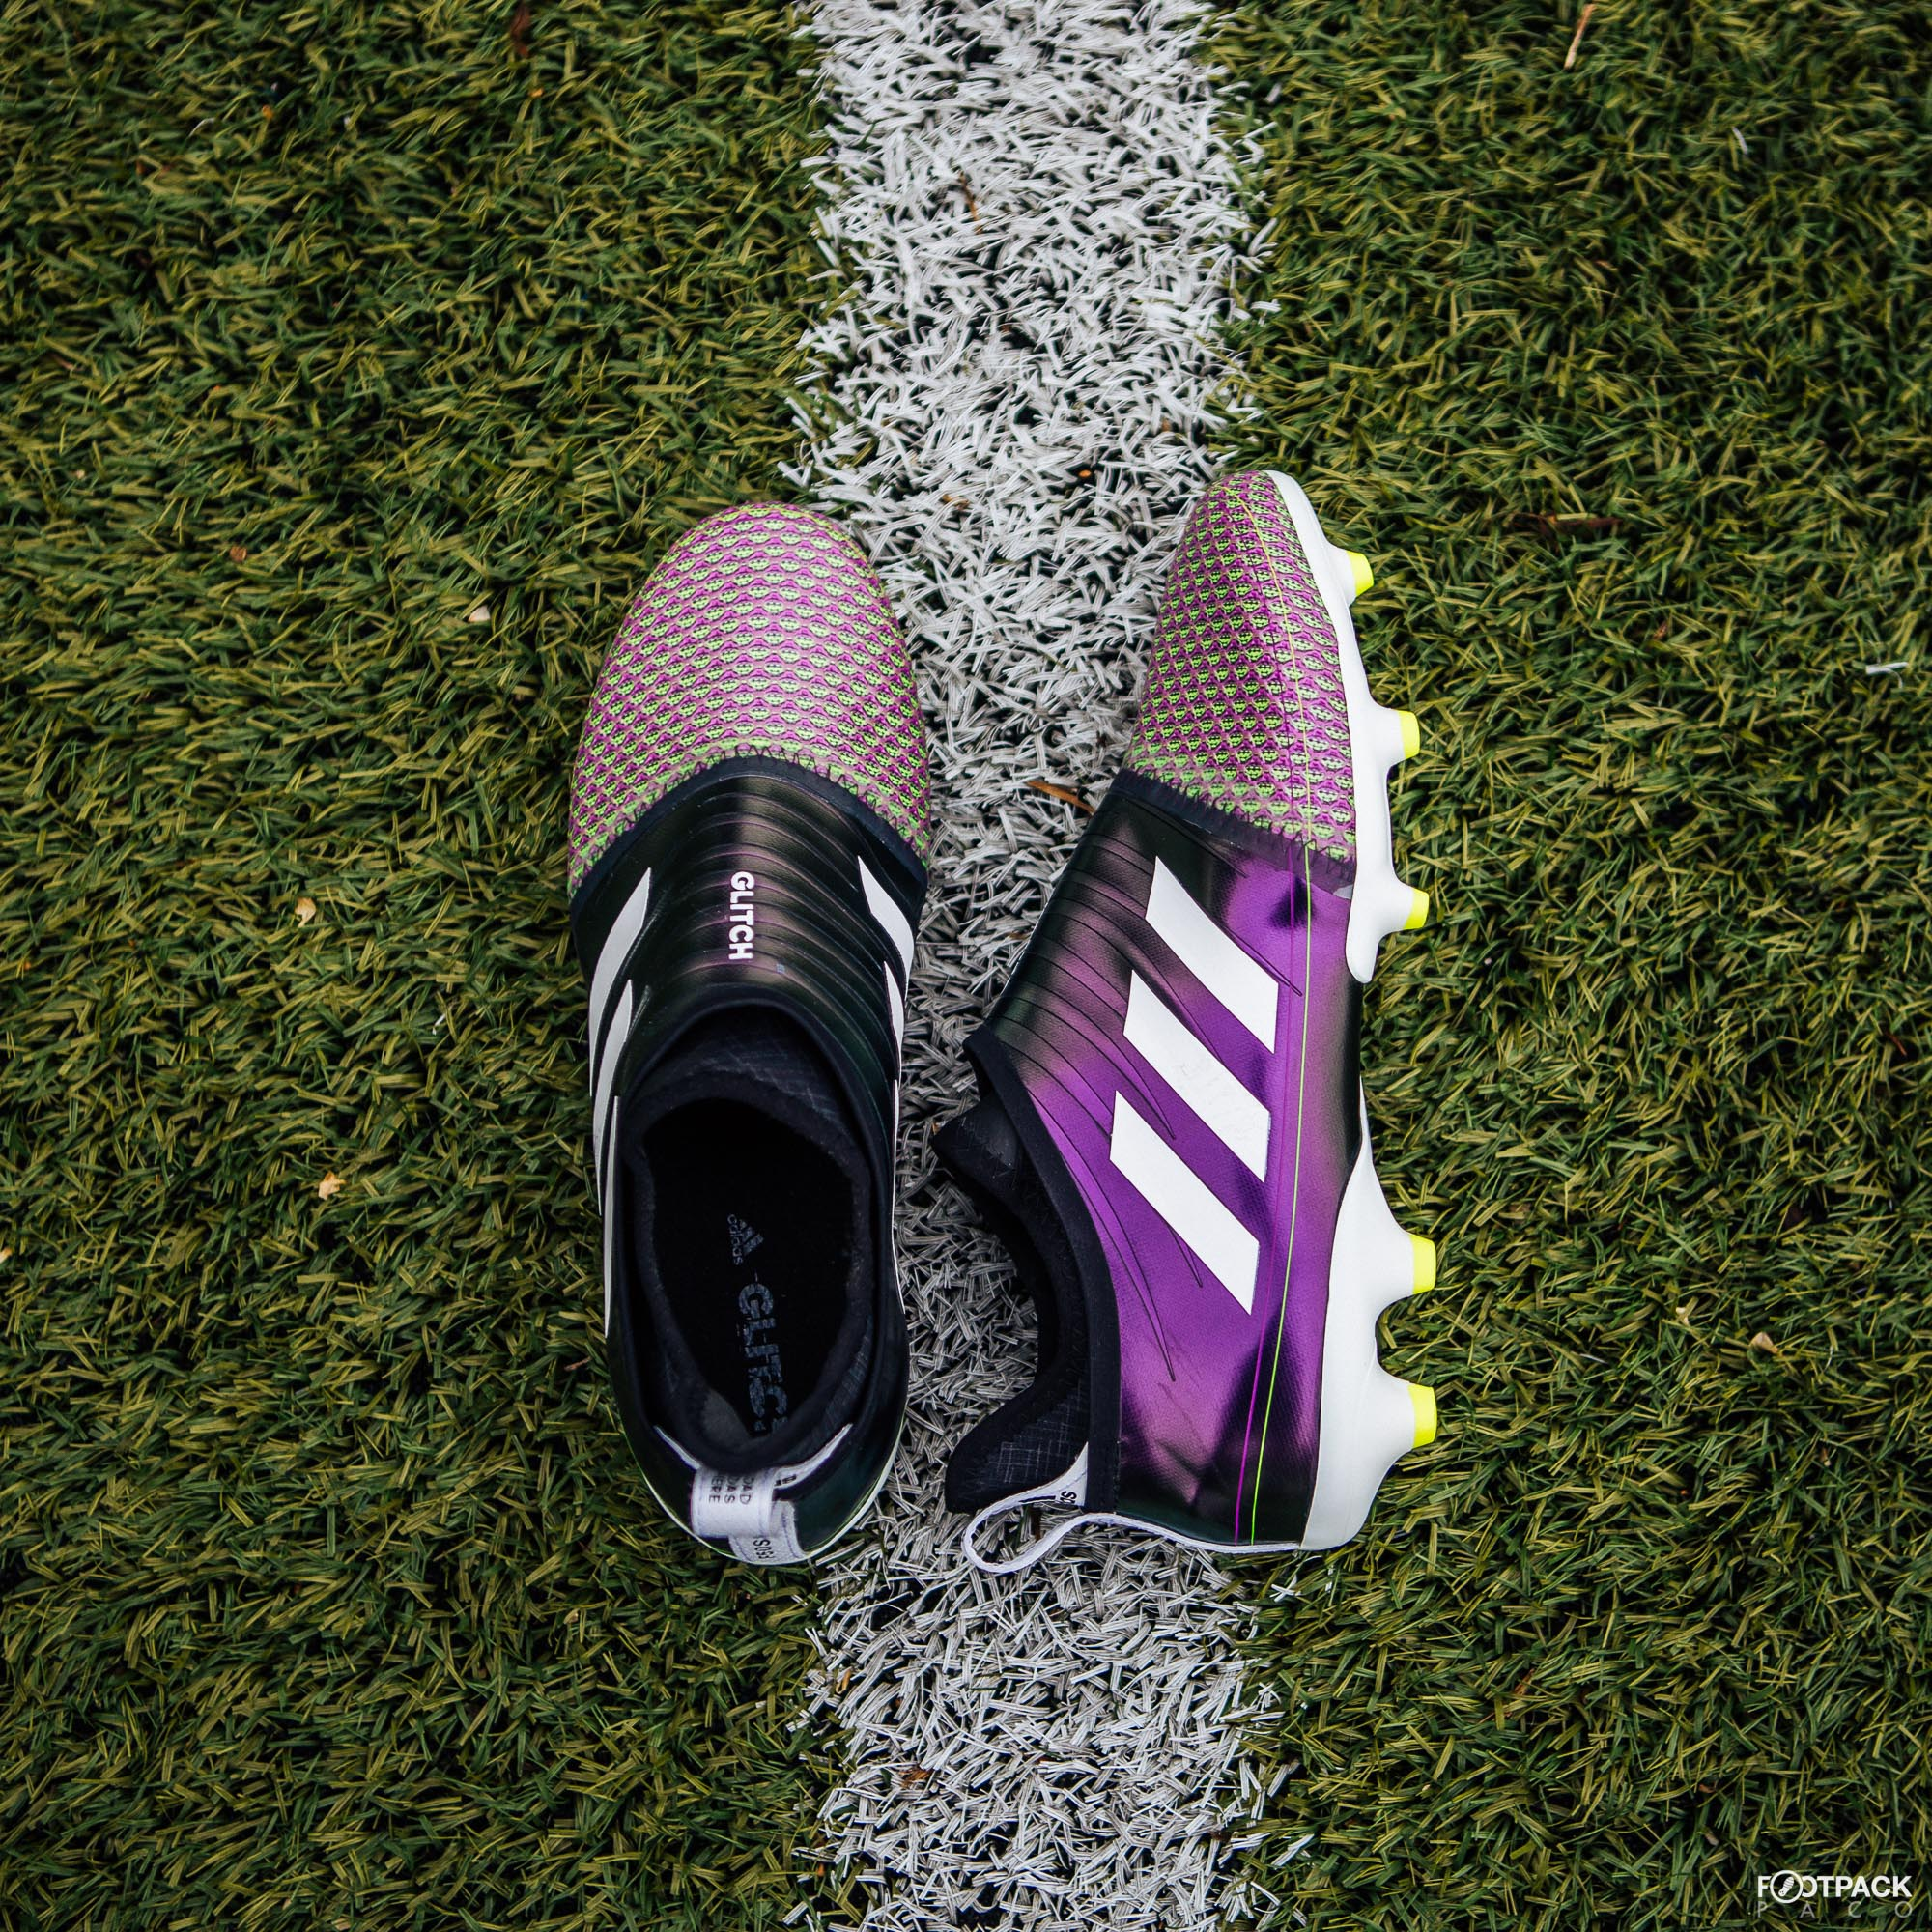 Chaussures-football-adidas-glitch-f50-mai-2018-5